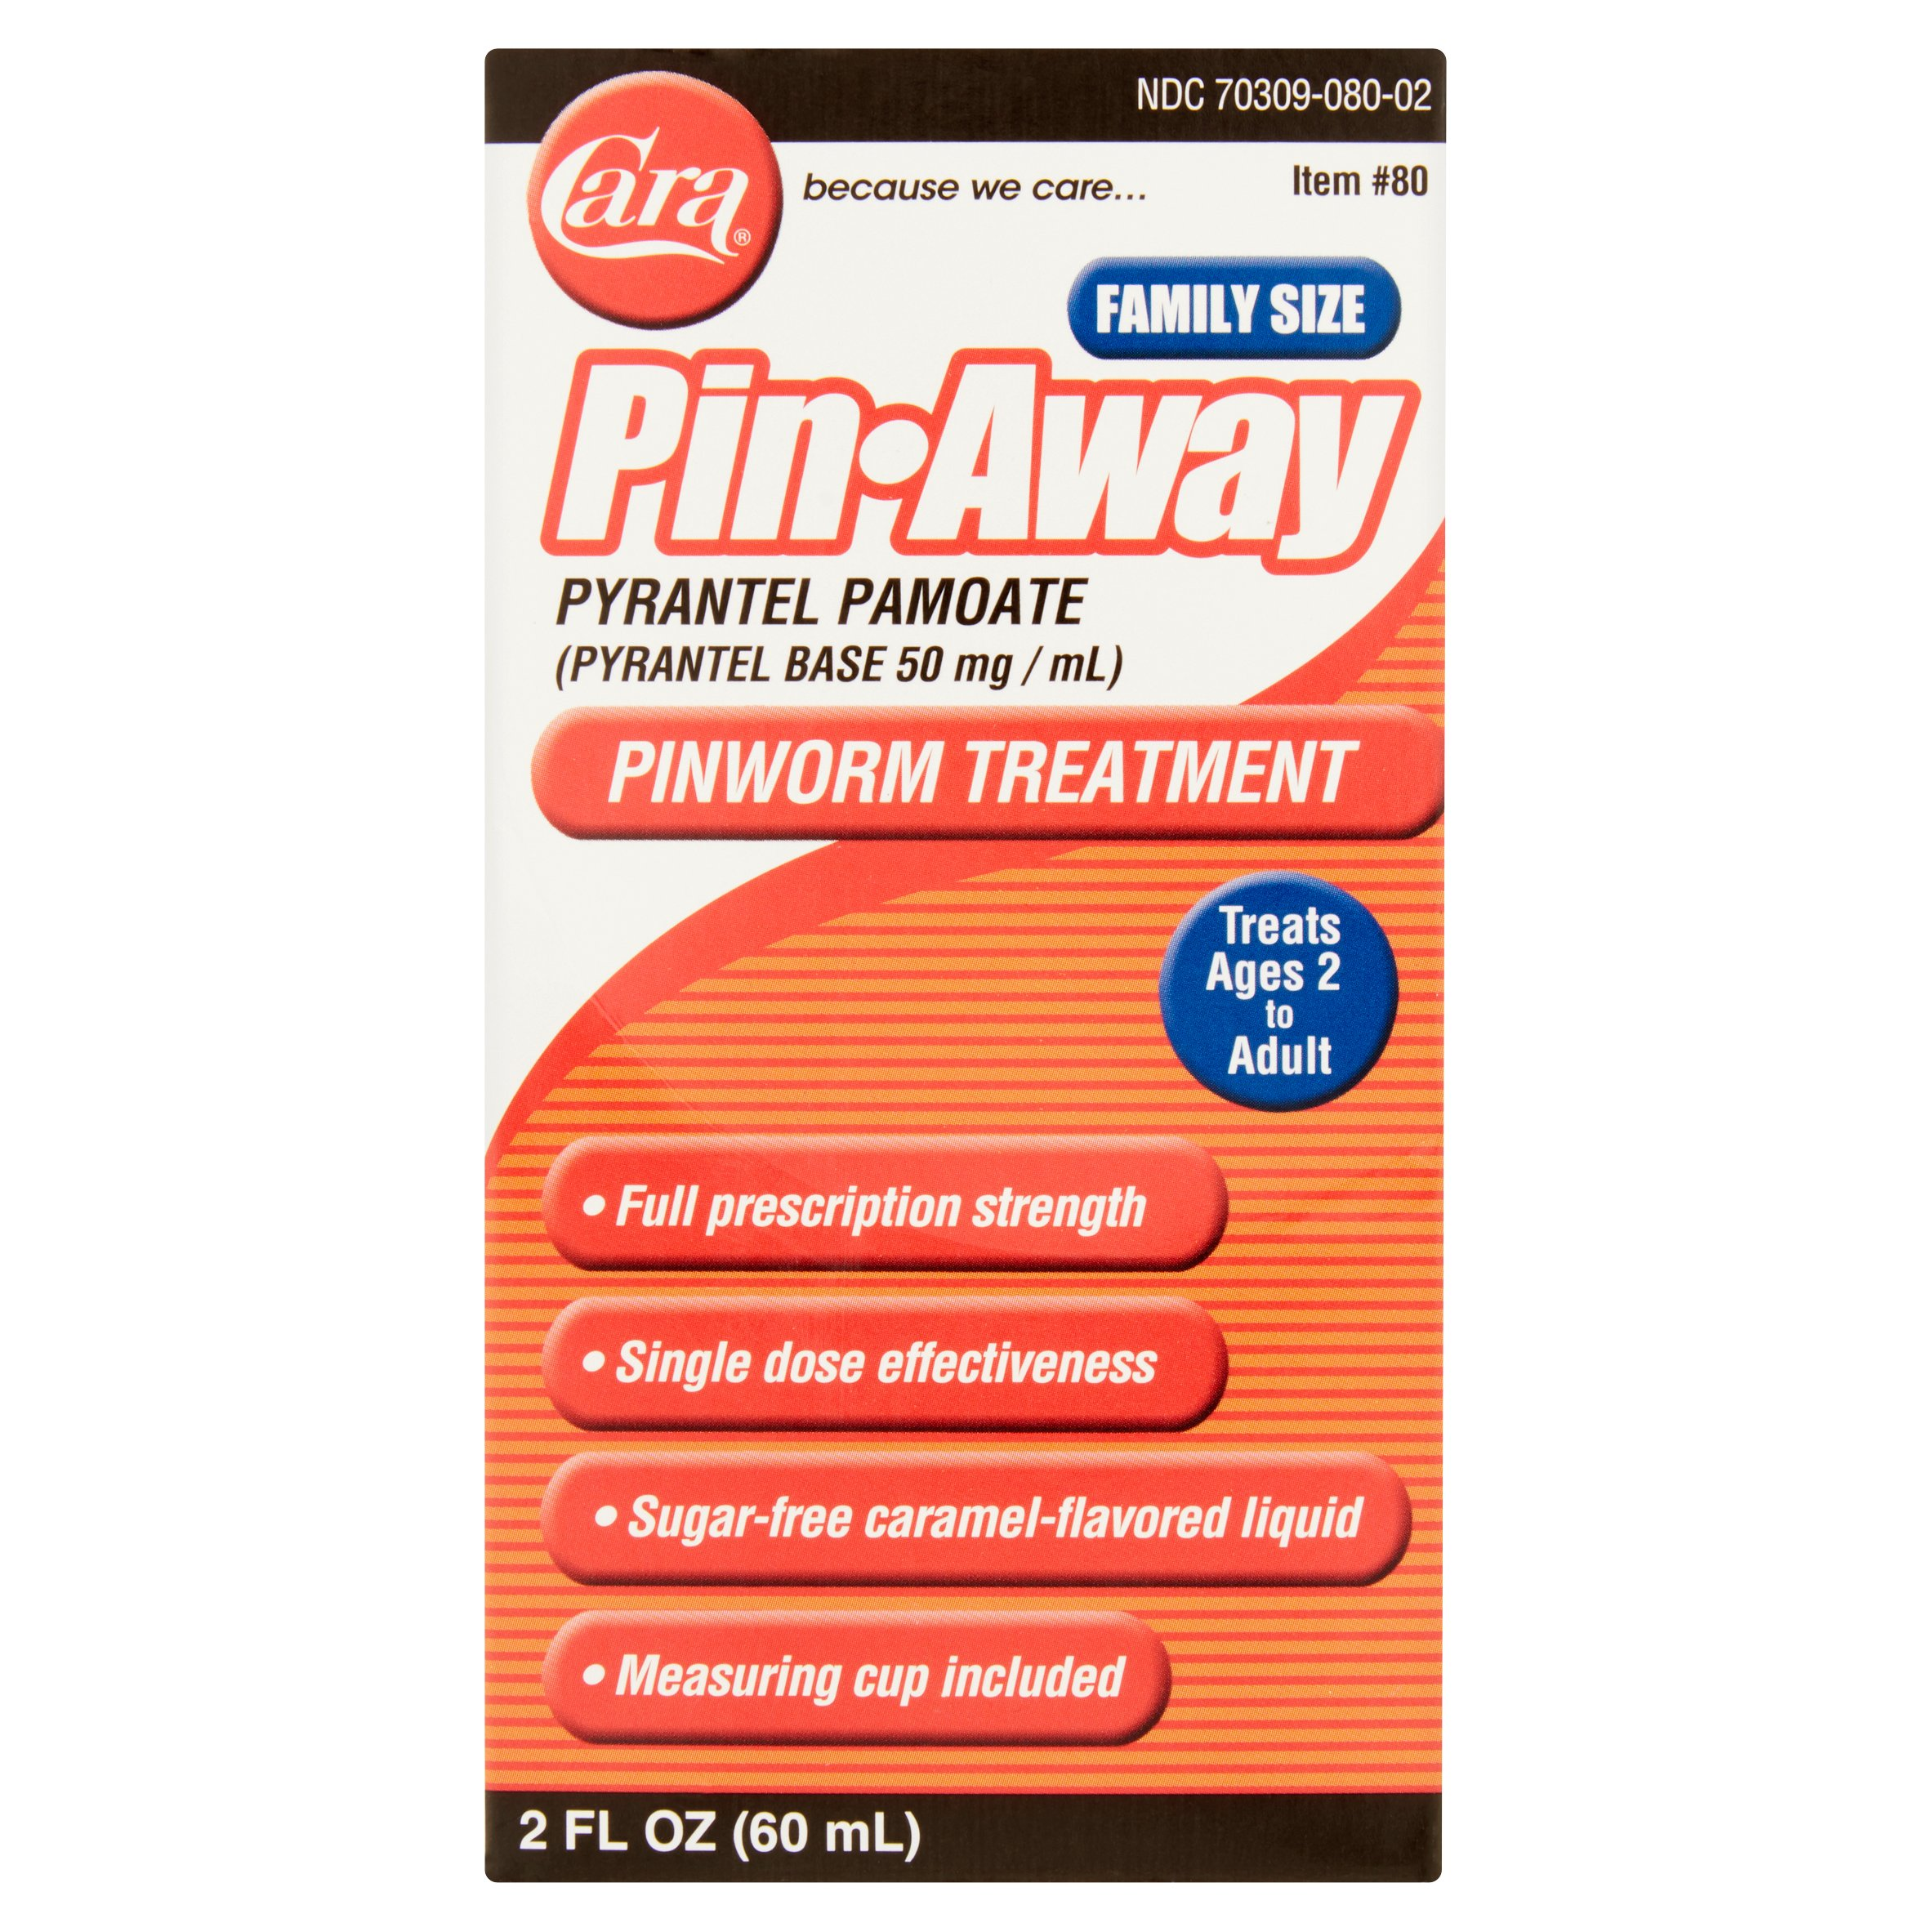 Cara Pin-Away Pyrantel Pamoate Pinworm Treatment, 2 fl oz